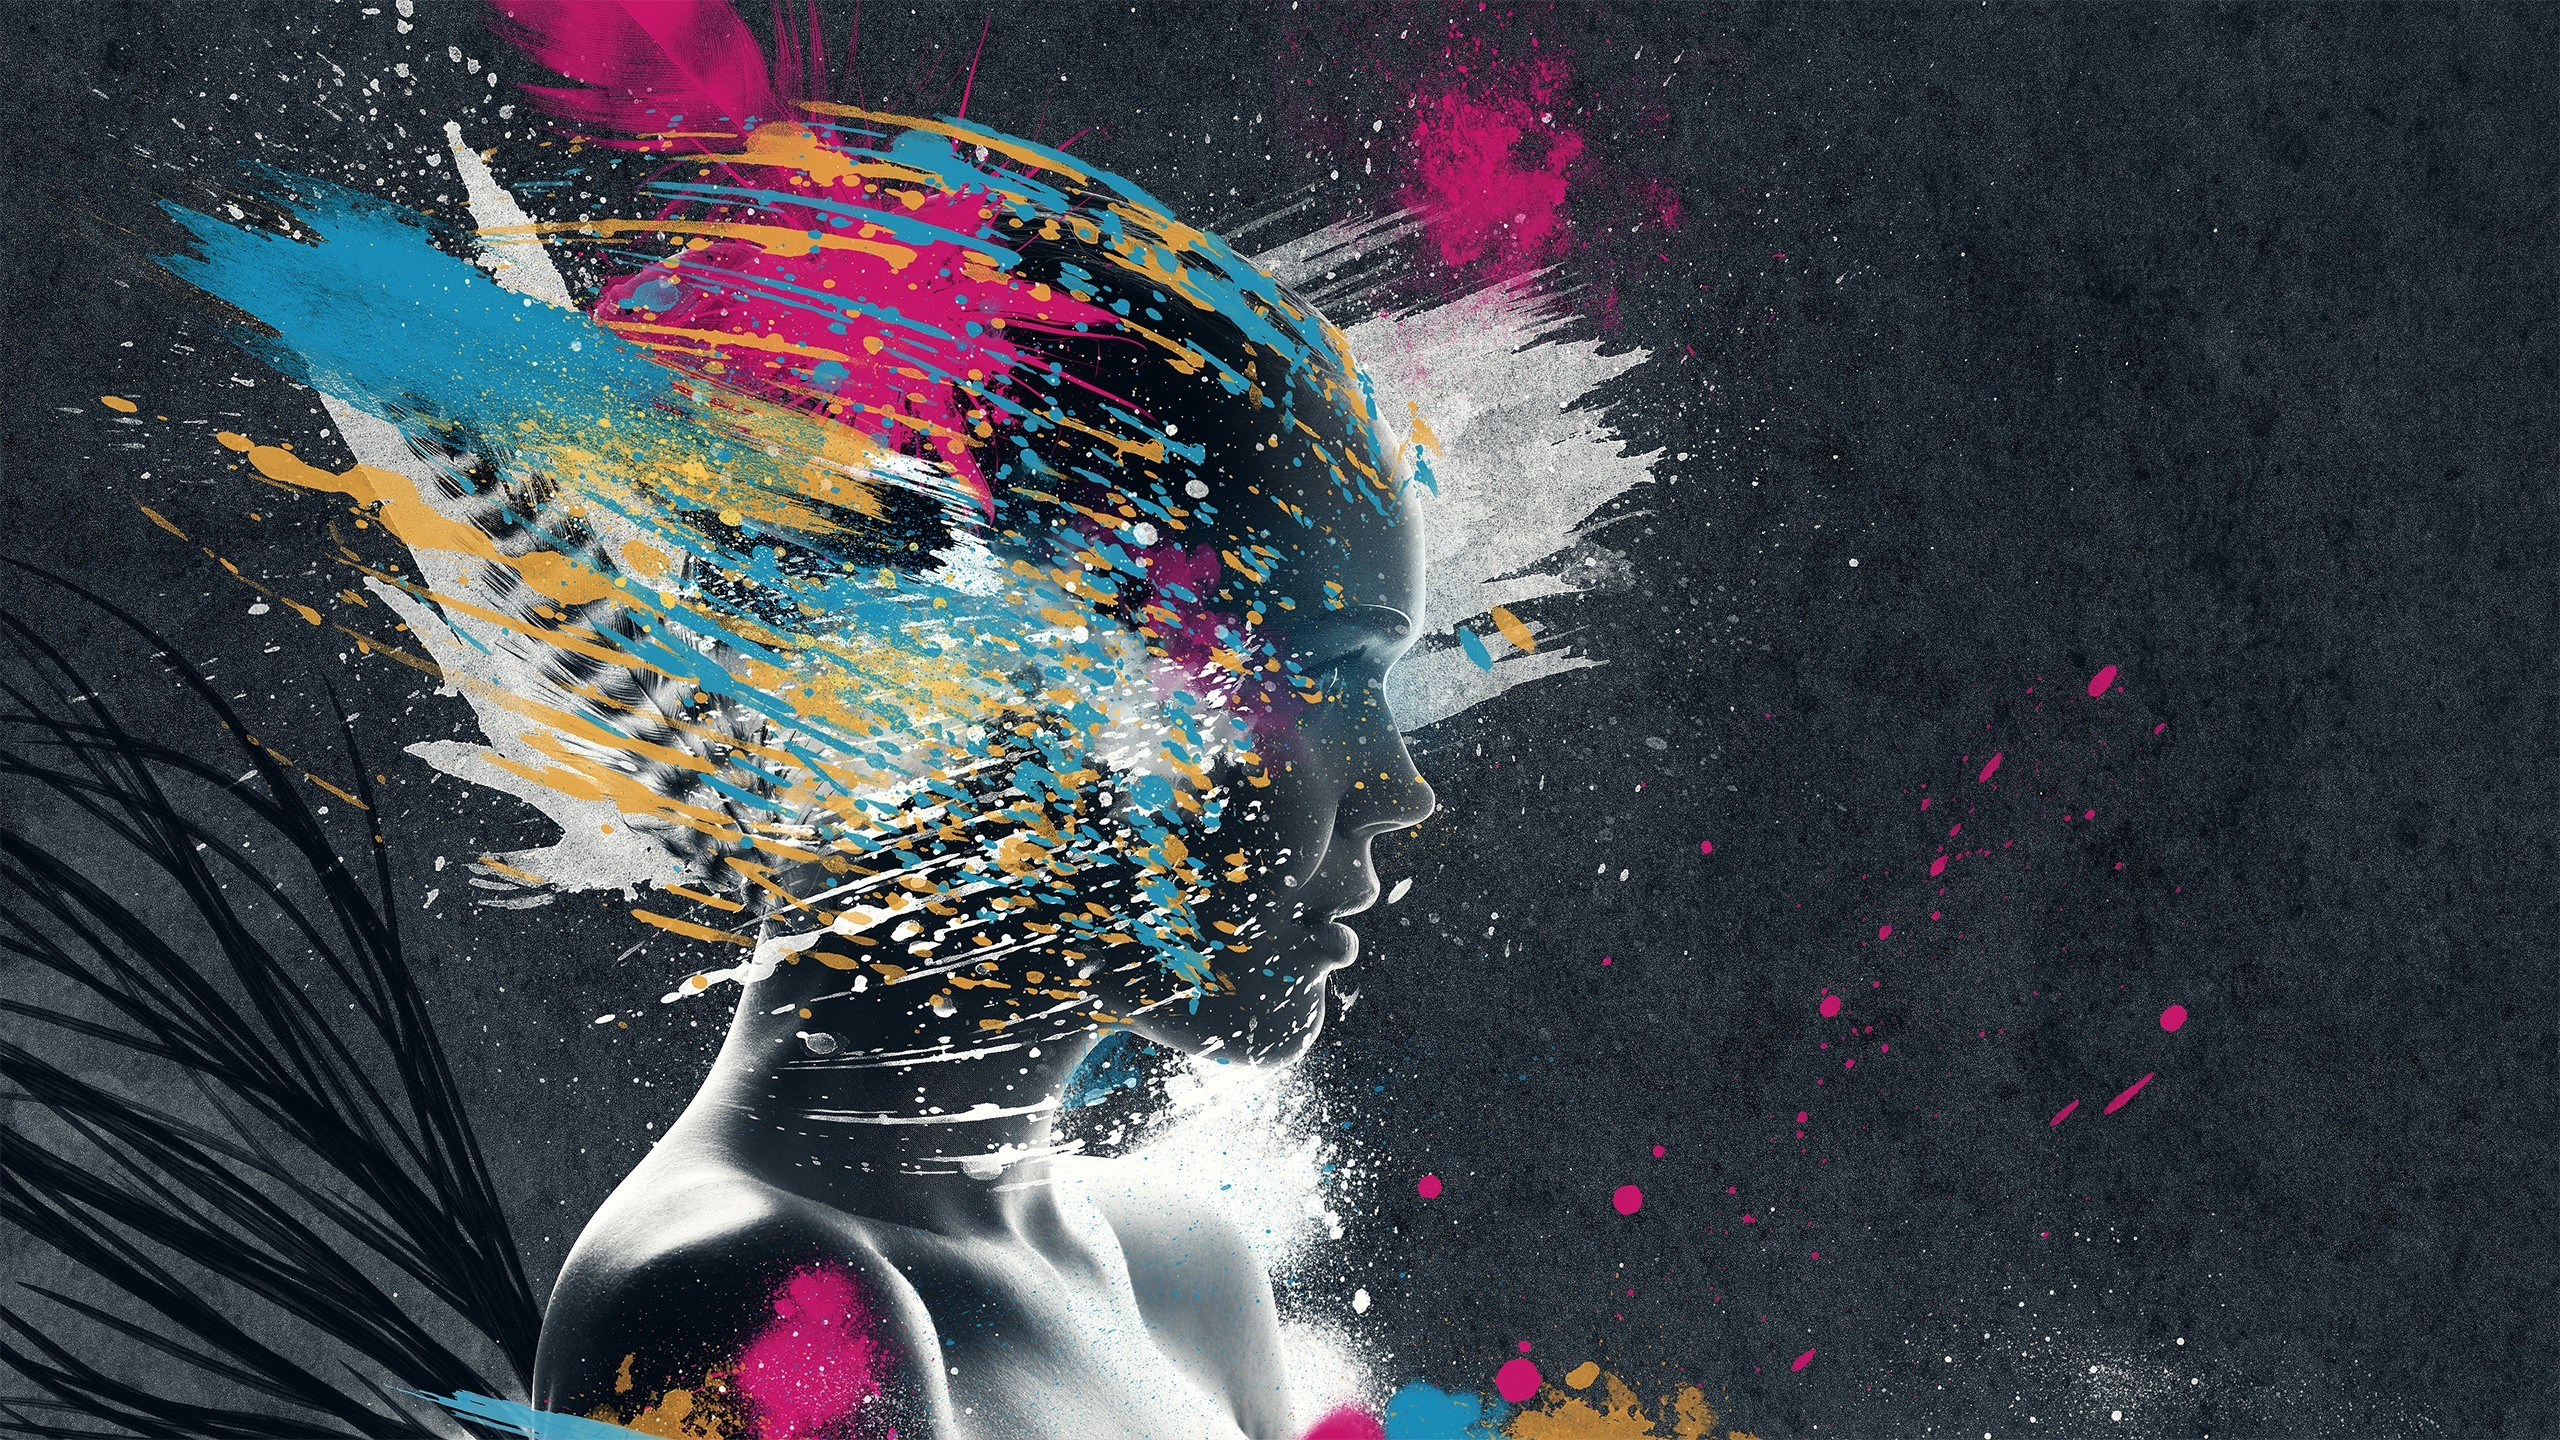 General 2560x1440 artwork people face colorful glitch art digital art paint splatter